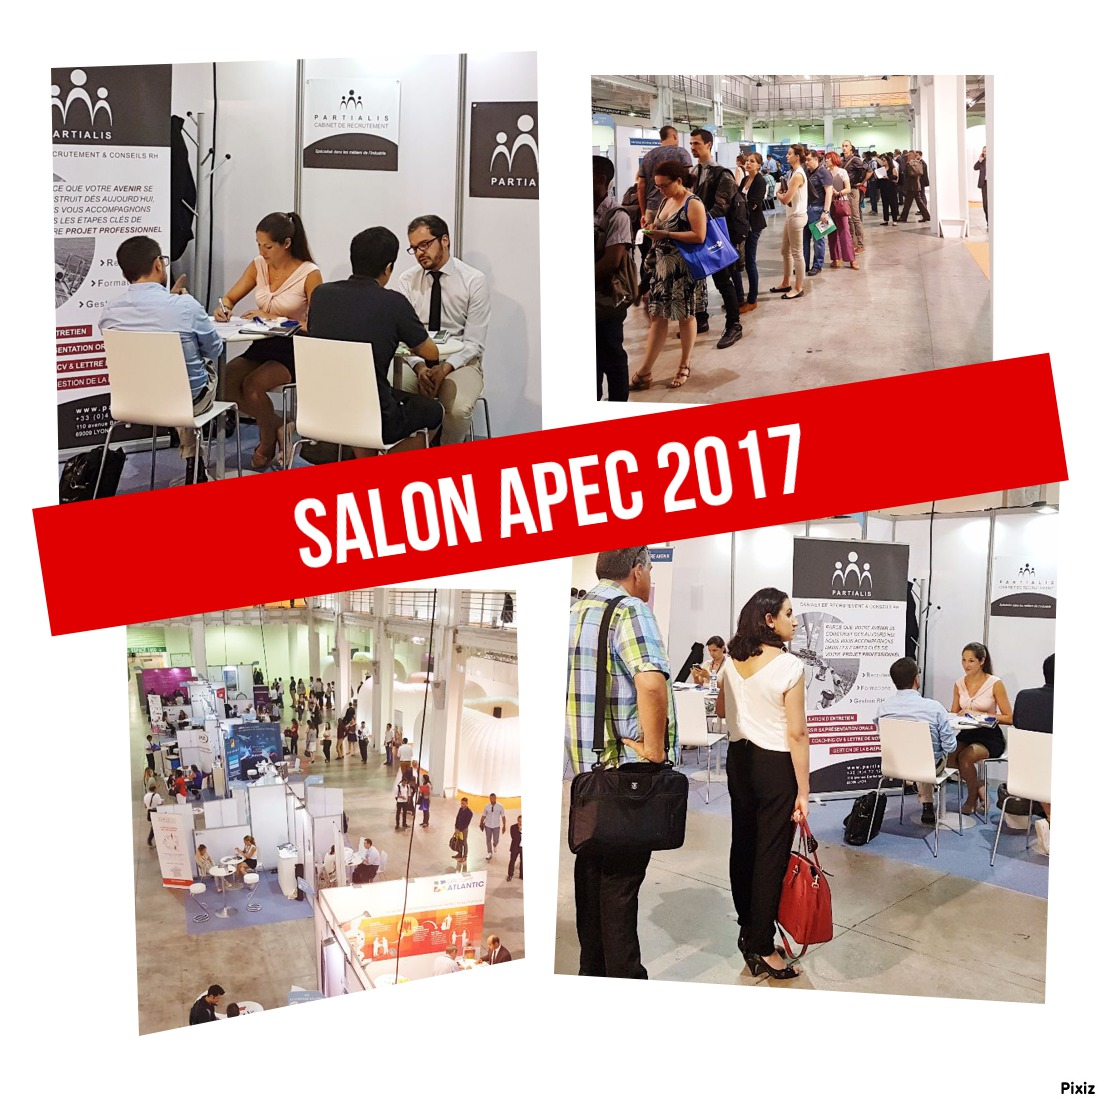 Salon de l apec 2017 recrutement et emploi industrie en for Salon recrutement 2017